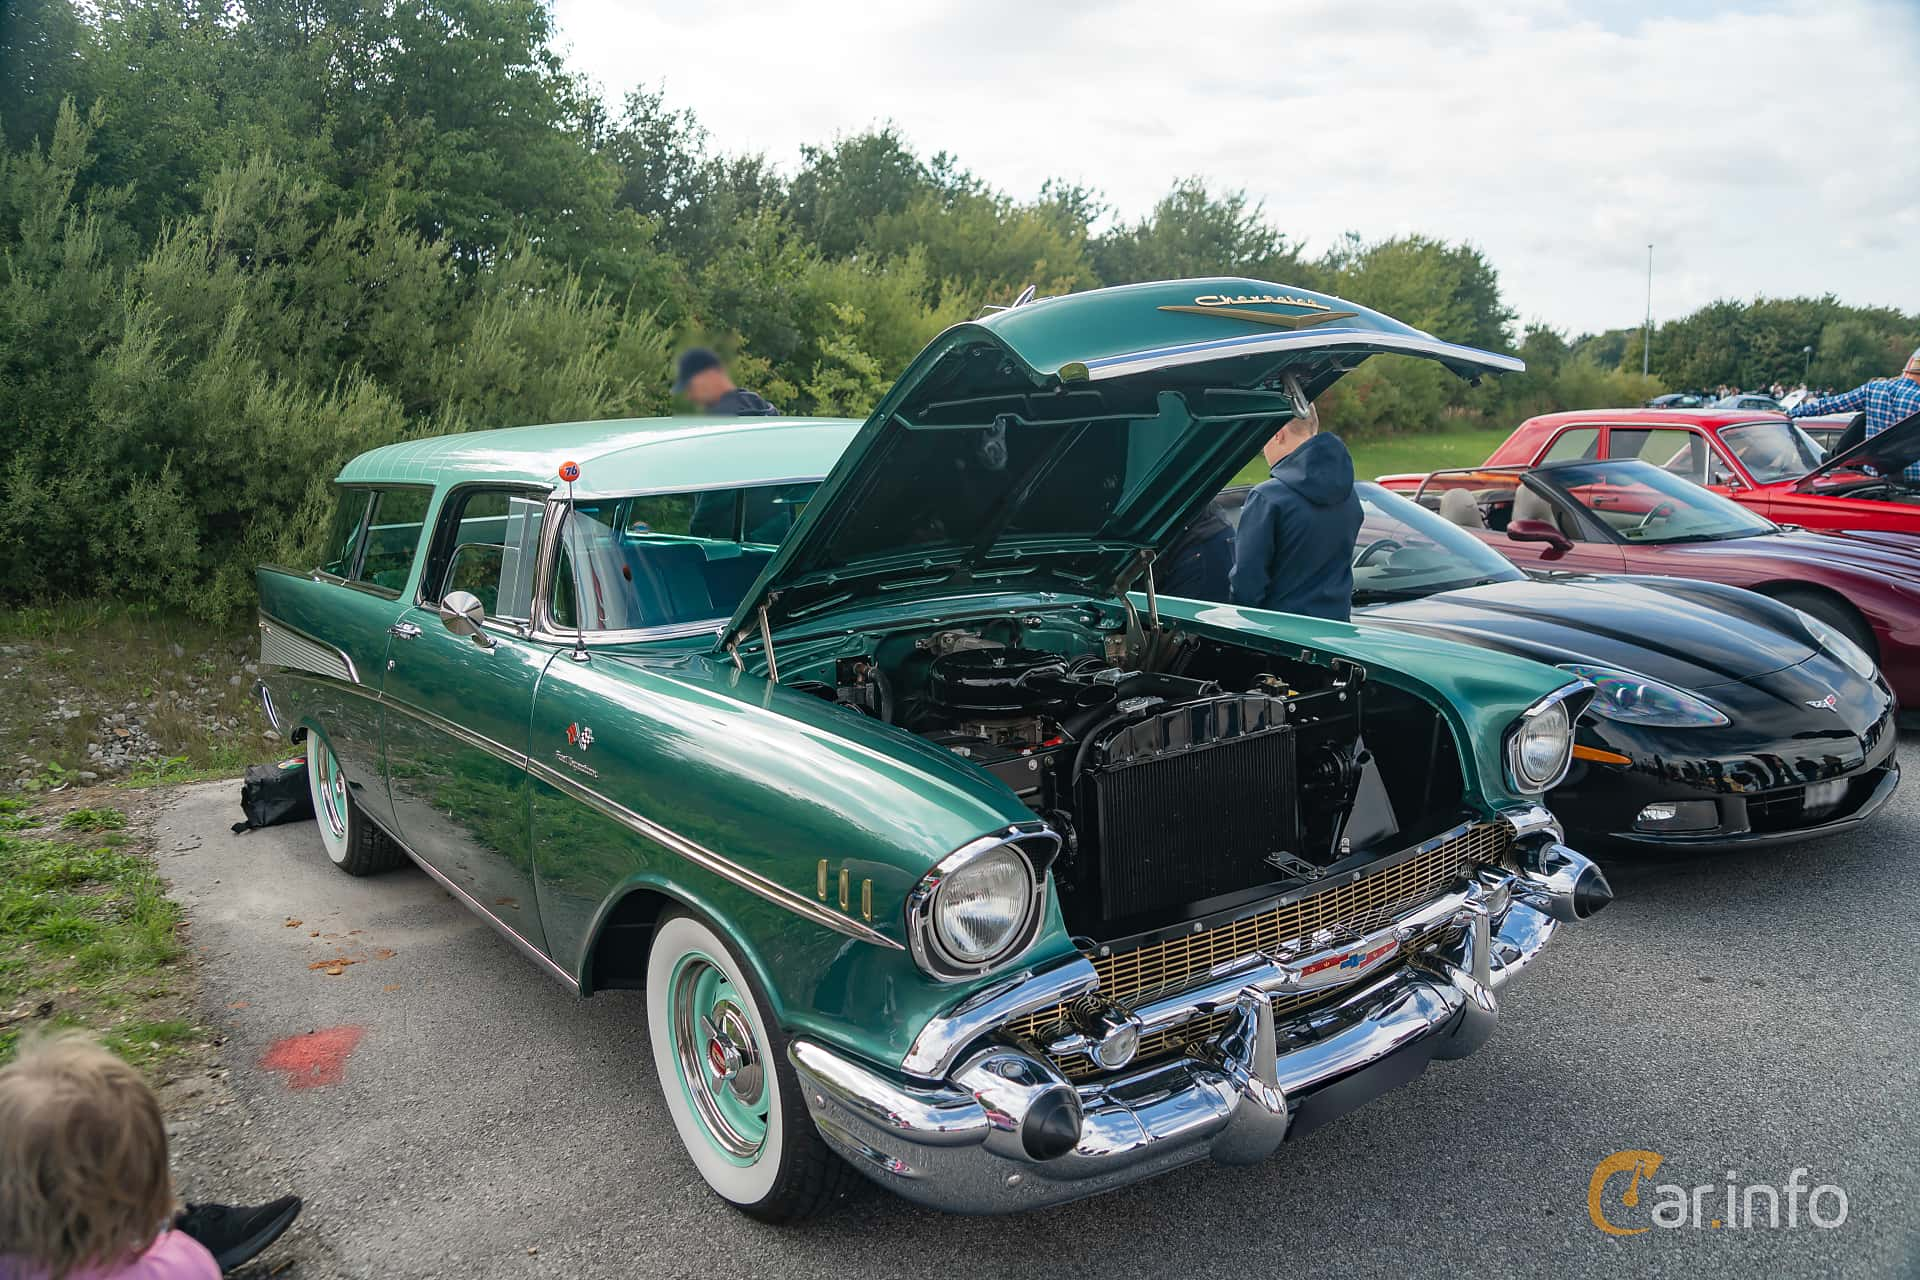 5 Images Of Chevrolet Bel Air Nomad 46 V8 Fi Manual 287hp 1957 By Chevy Front Side 287ps